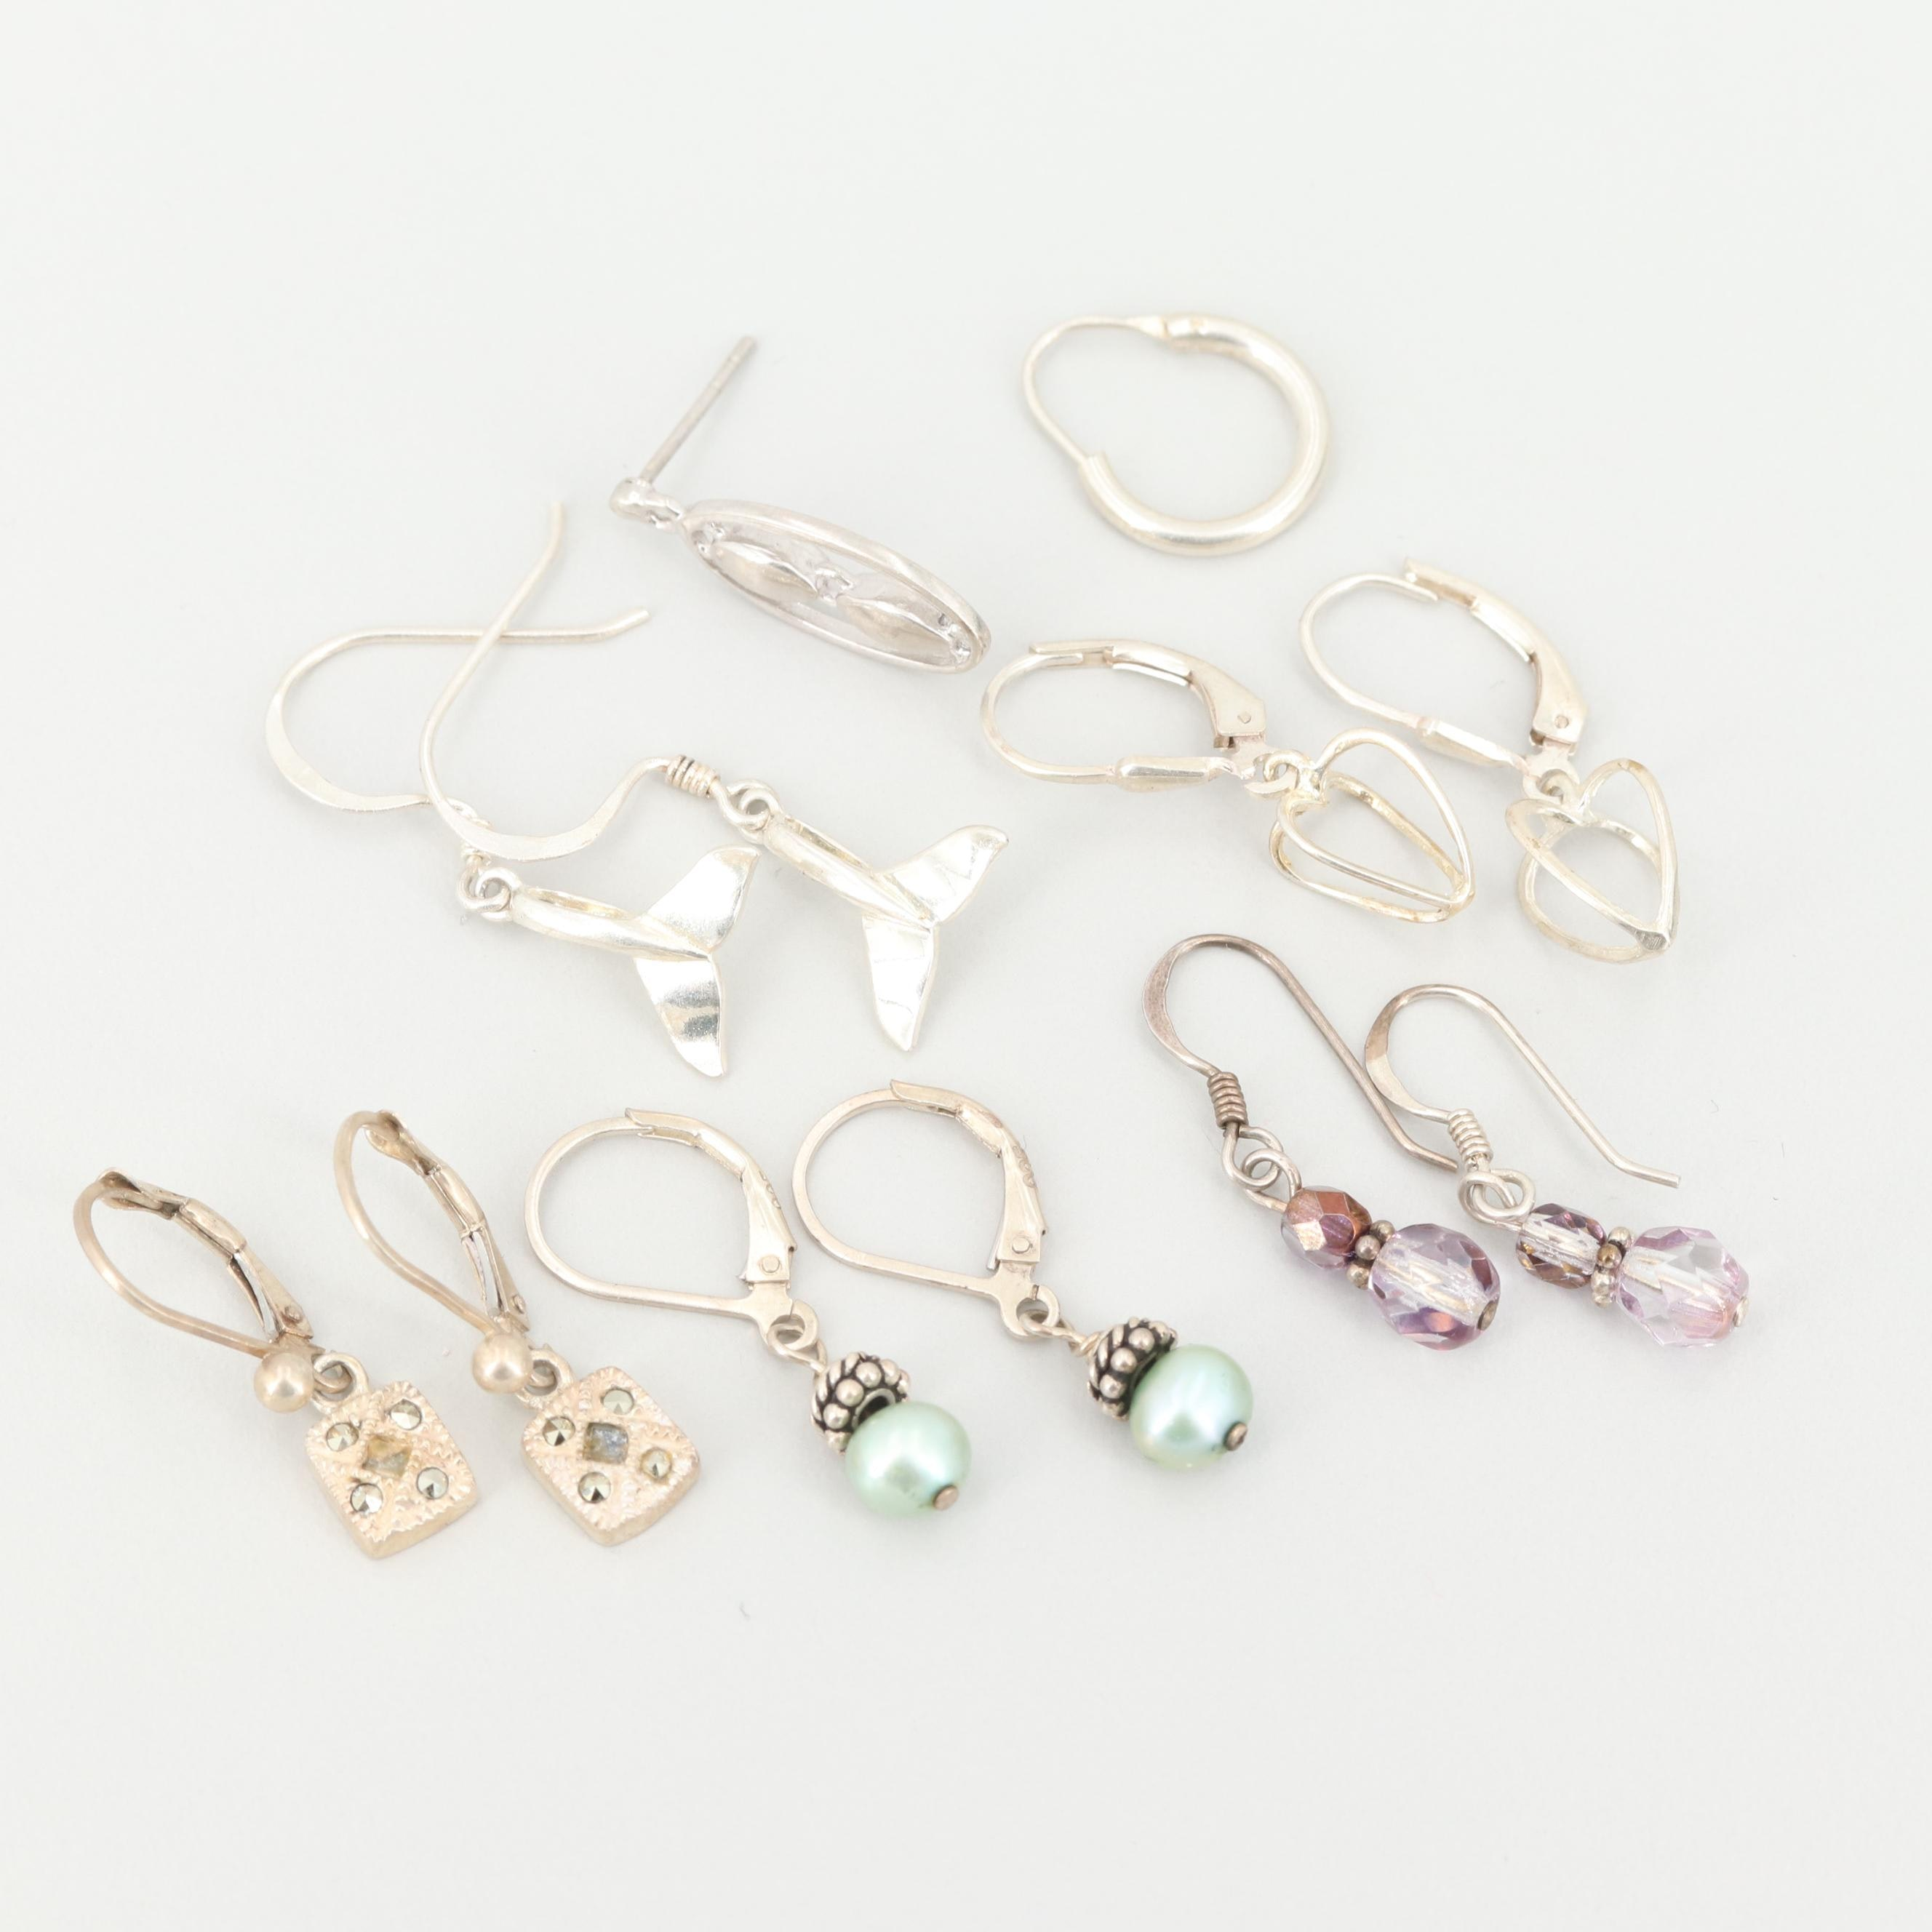 Assorted Sterling Silver Earrings Including Cultured Pearl and Marcasite